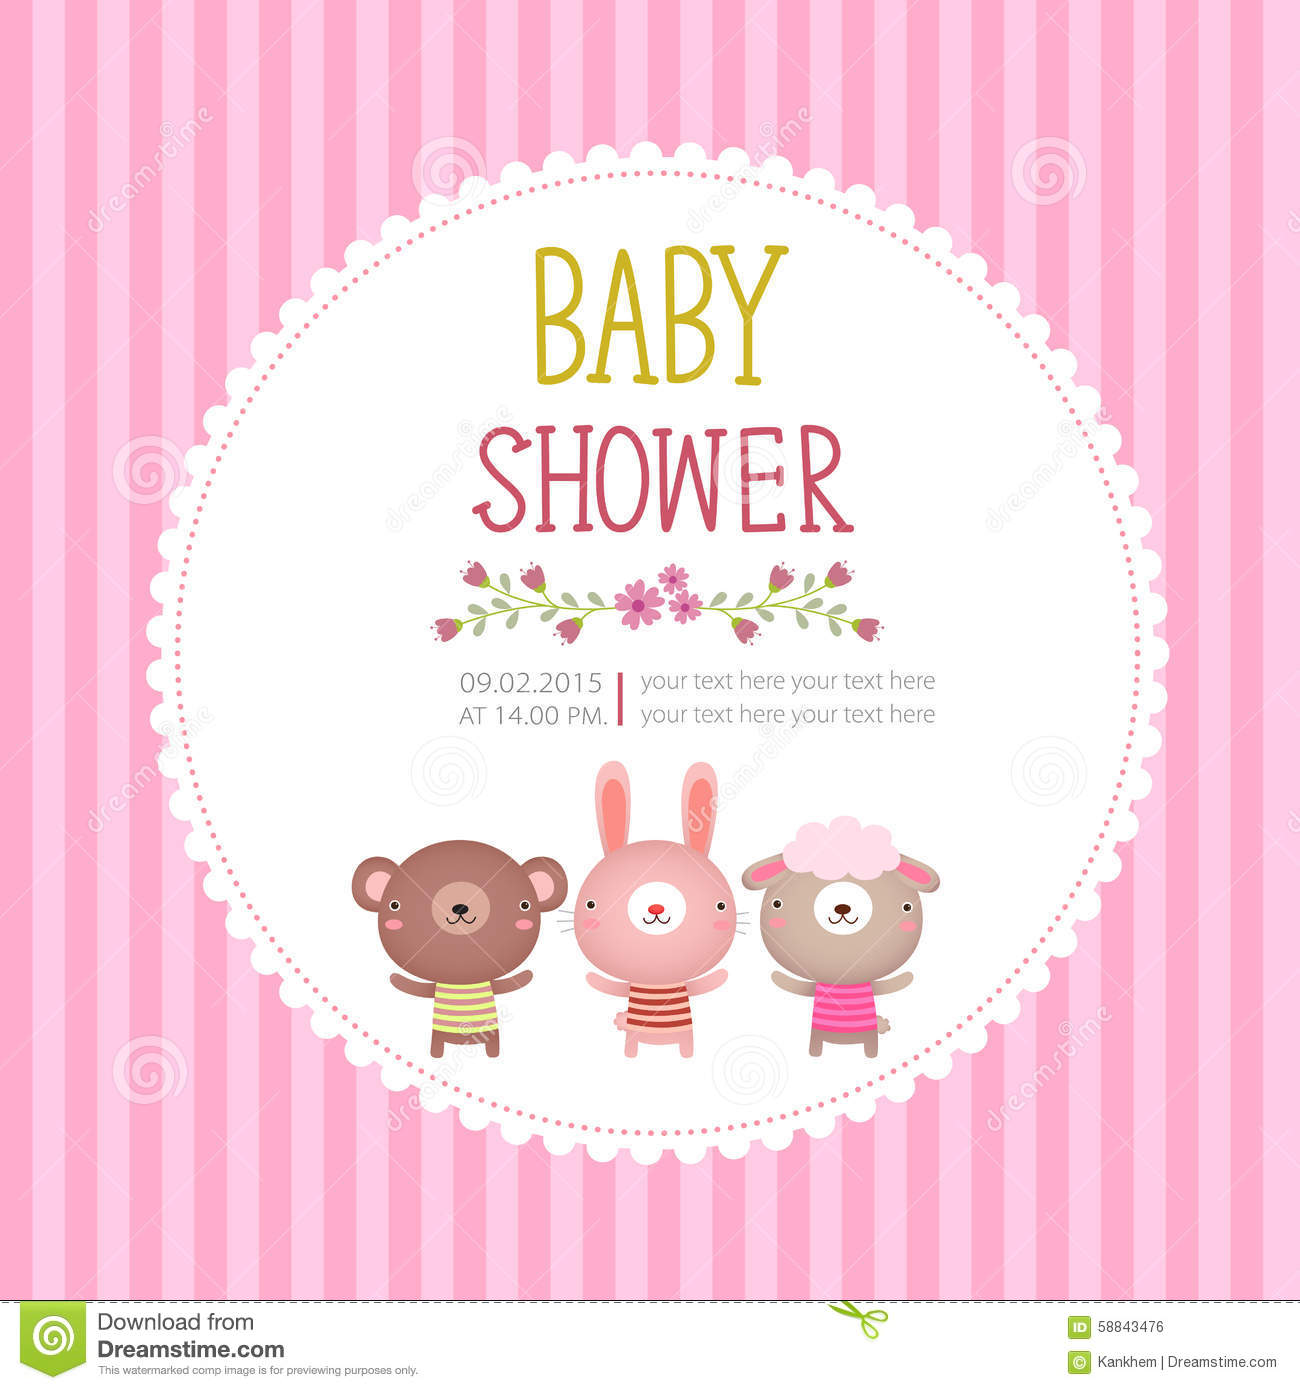 Baby Shower Invitation Card Template On Pink Background Stock Vector ...